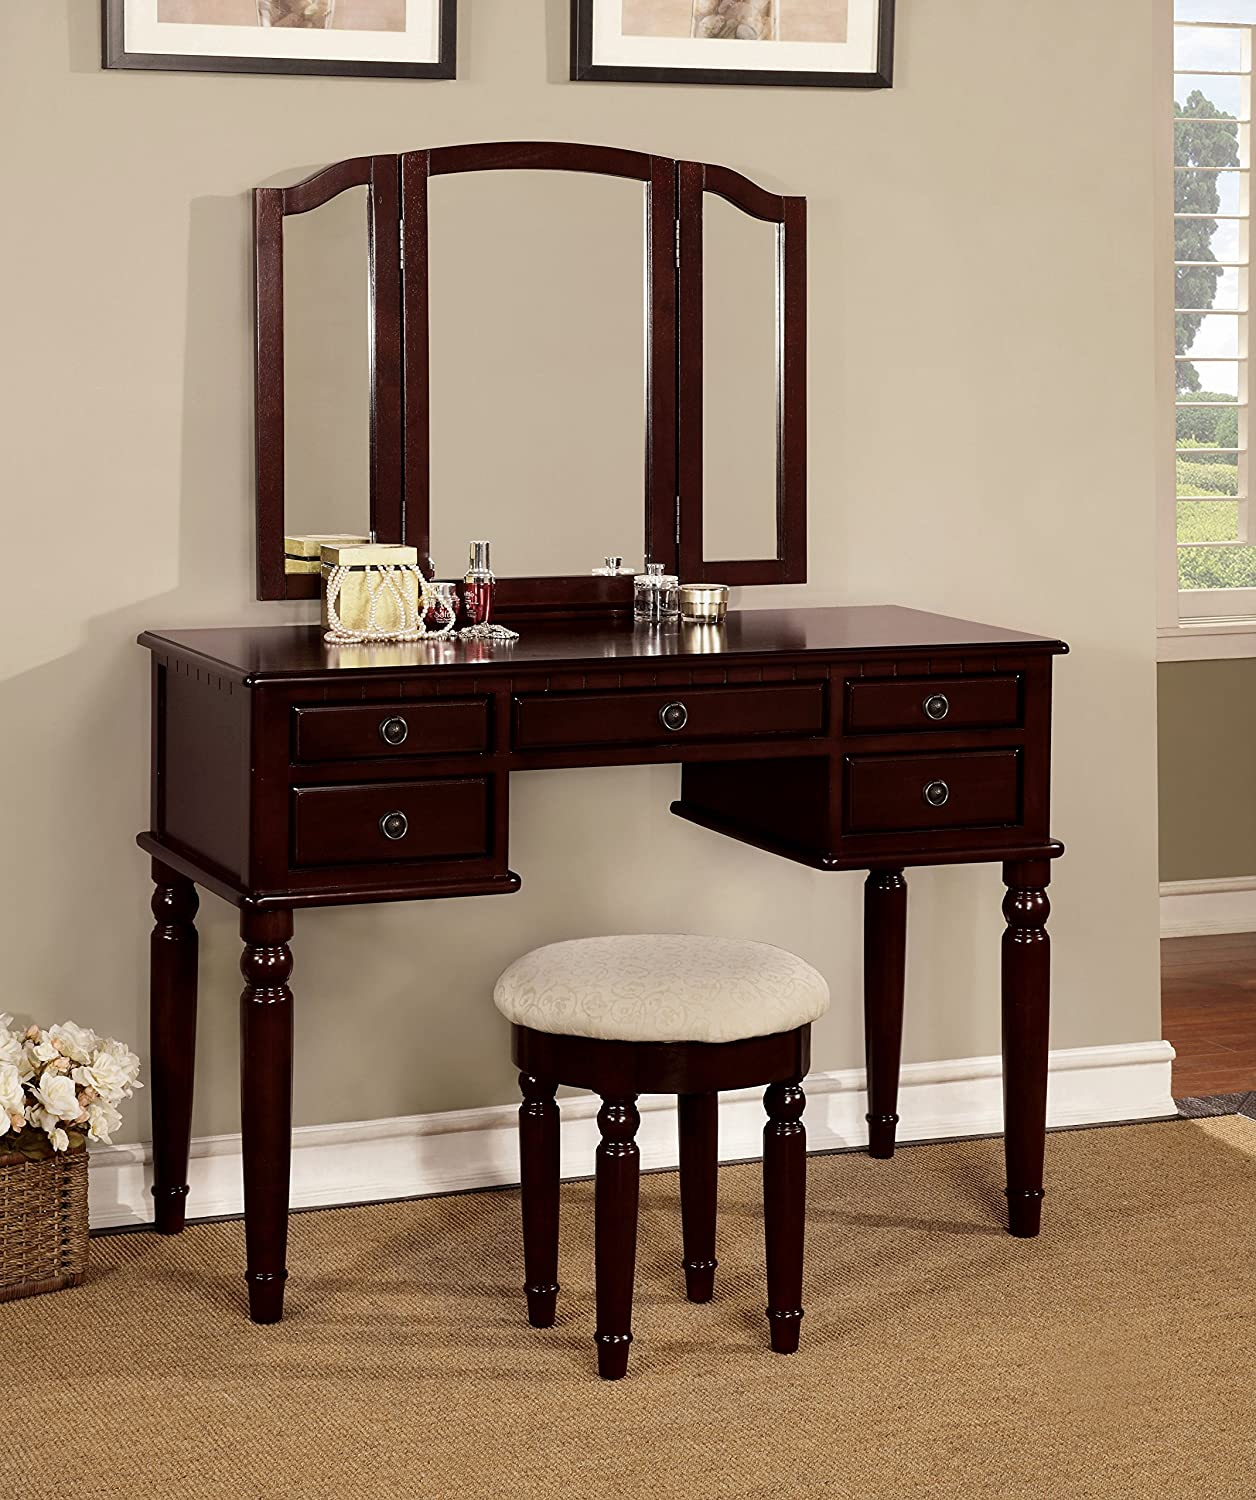 Furniture of America Meredith Vanity Table with Matching Stool - Cherry